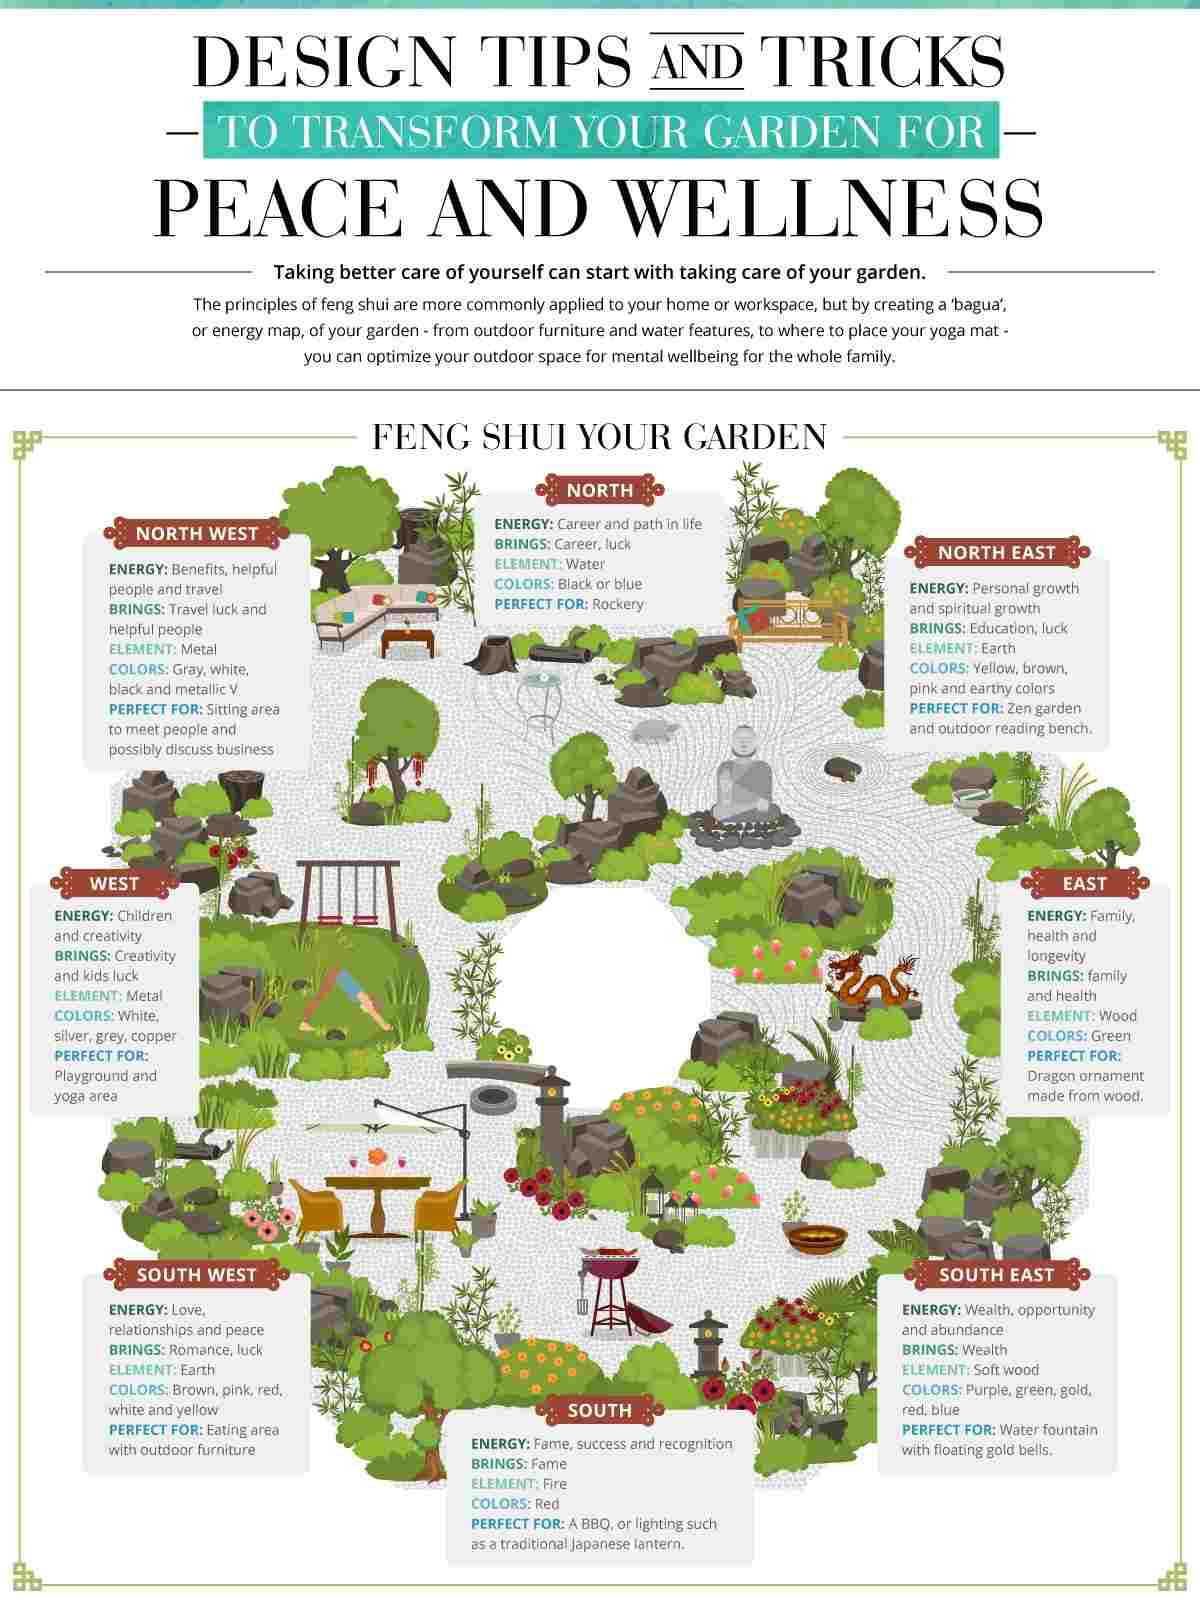 Feng shui applied to landscape design can improve well being for Feng shui garden layout